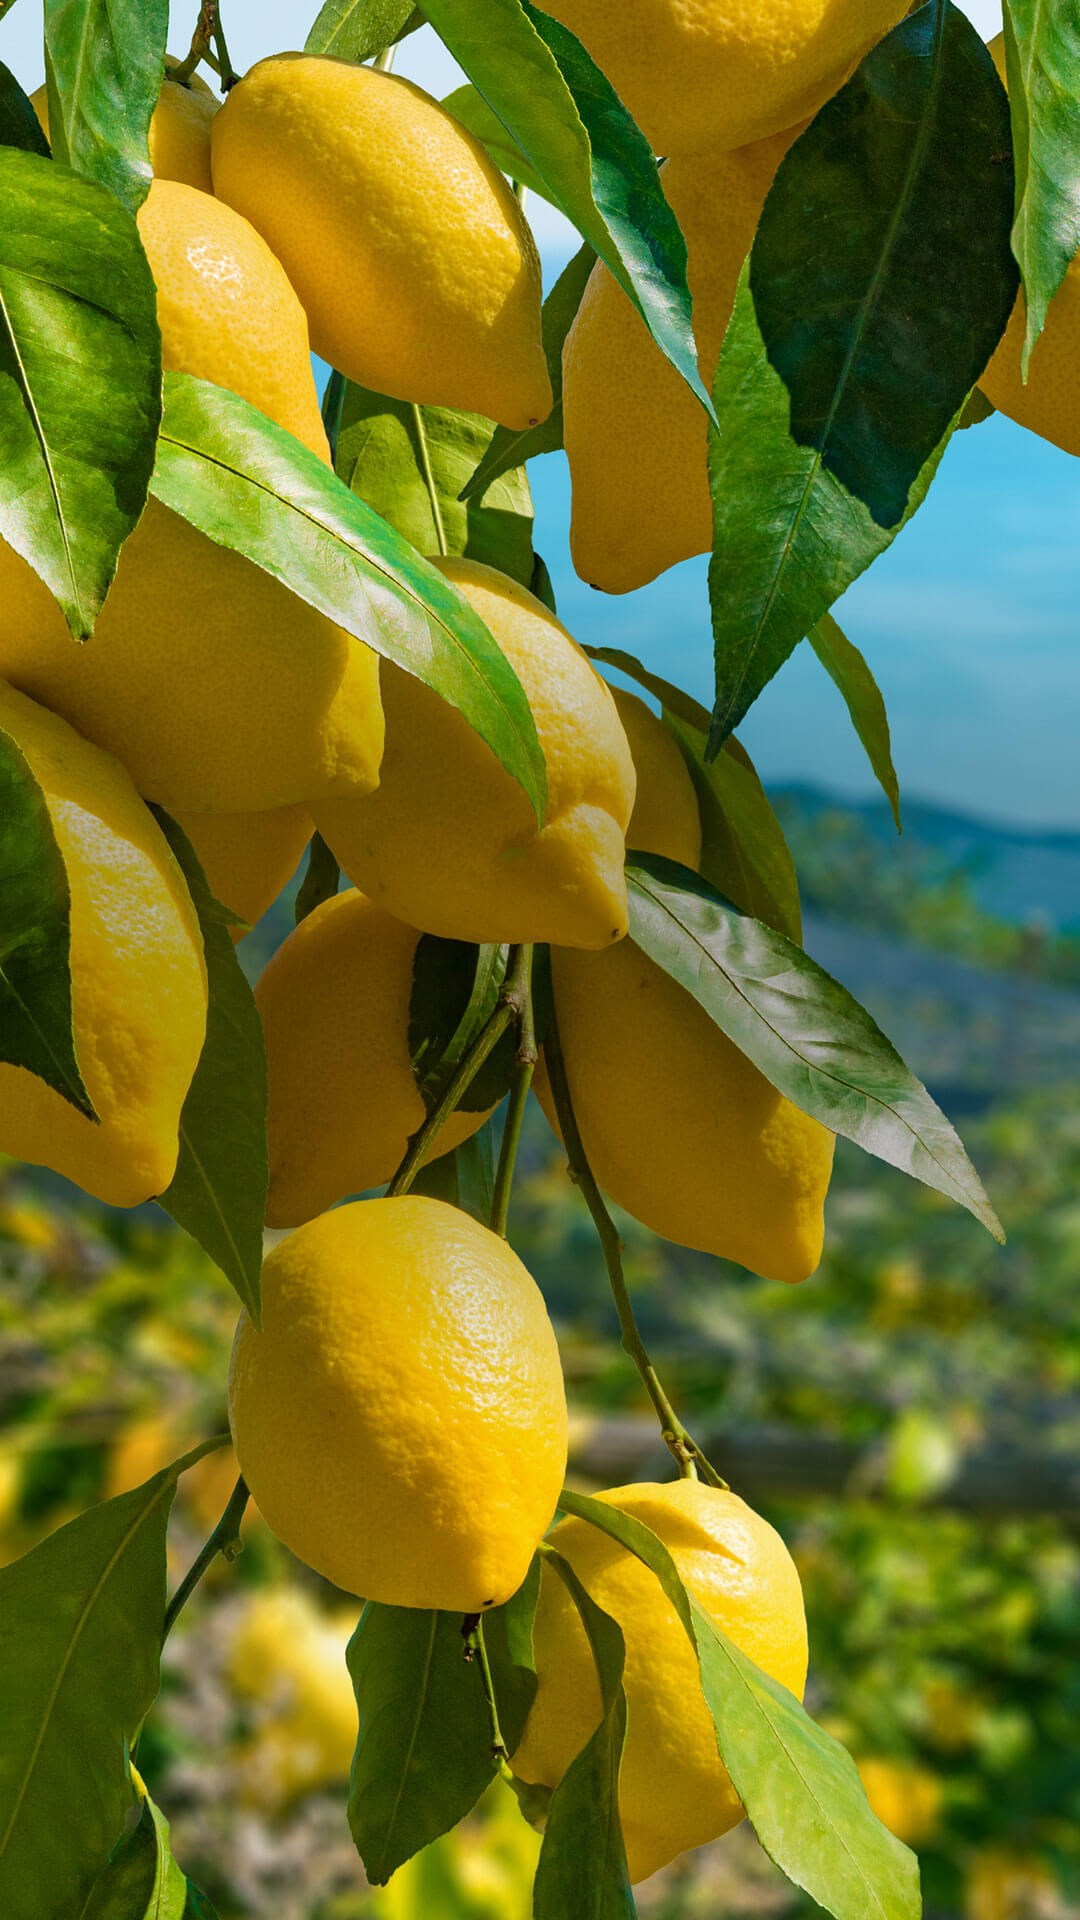 Portrait of bunches of lemons in a lemon orchard